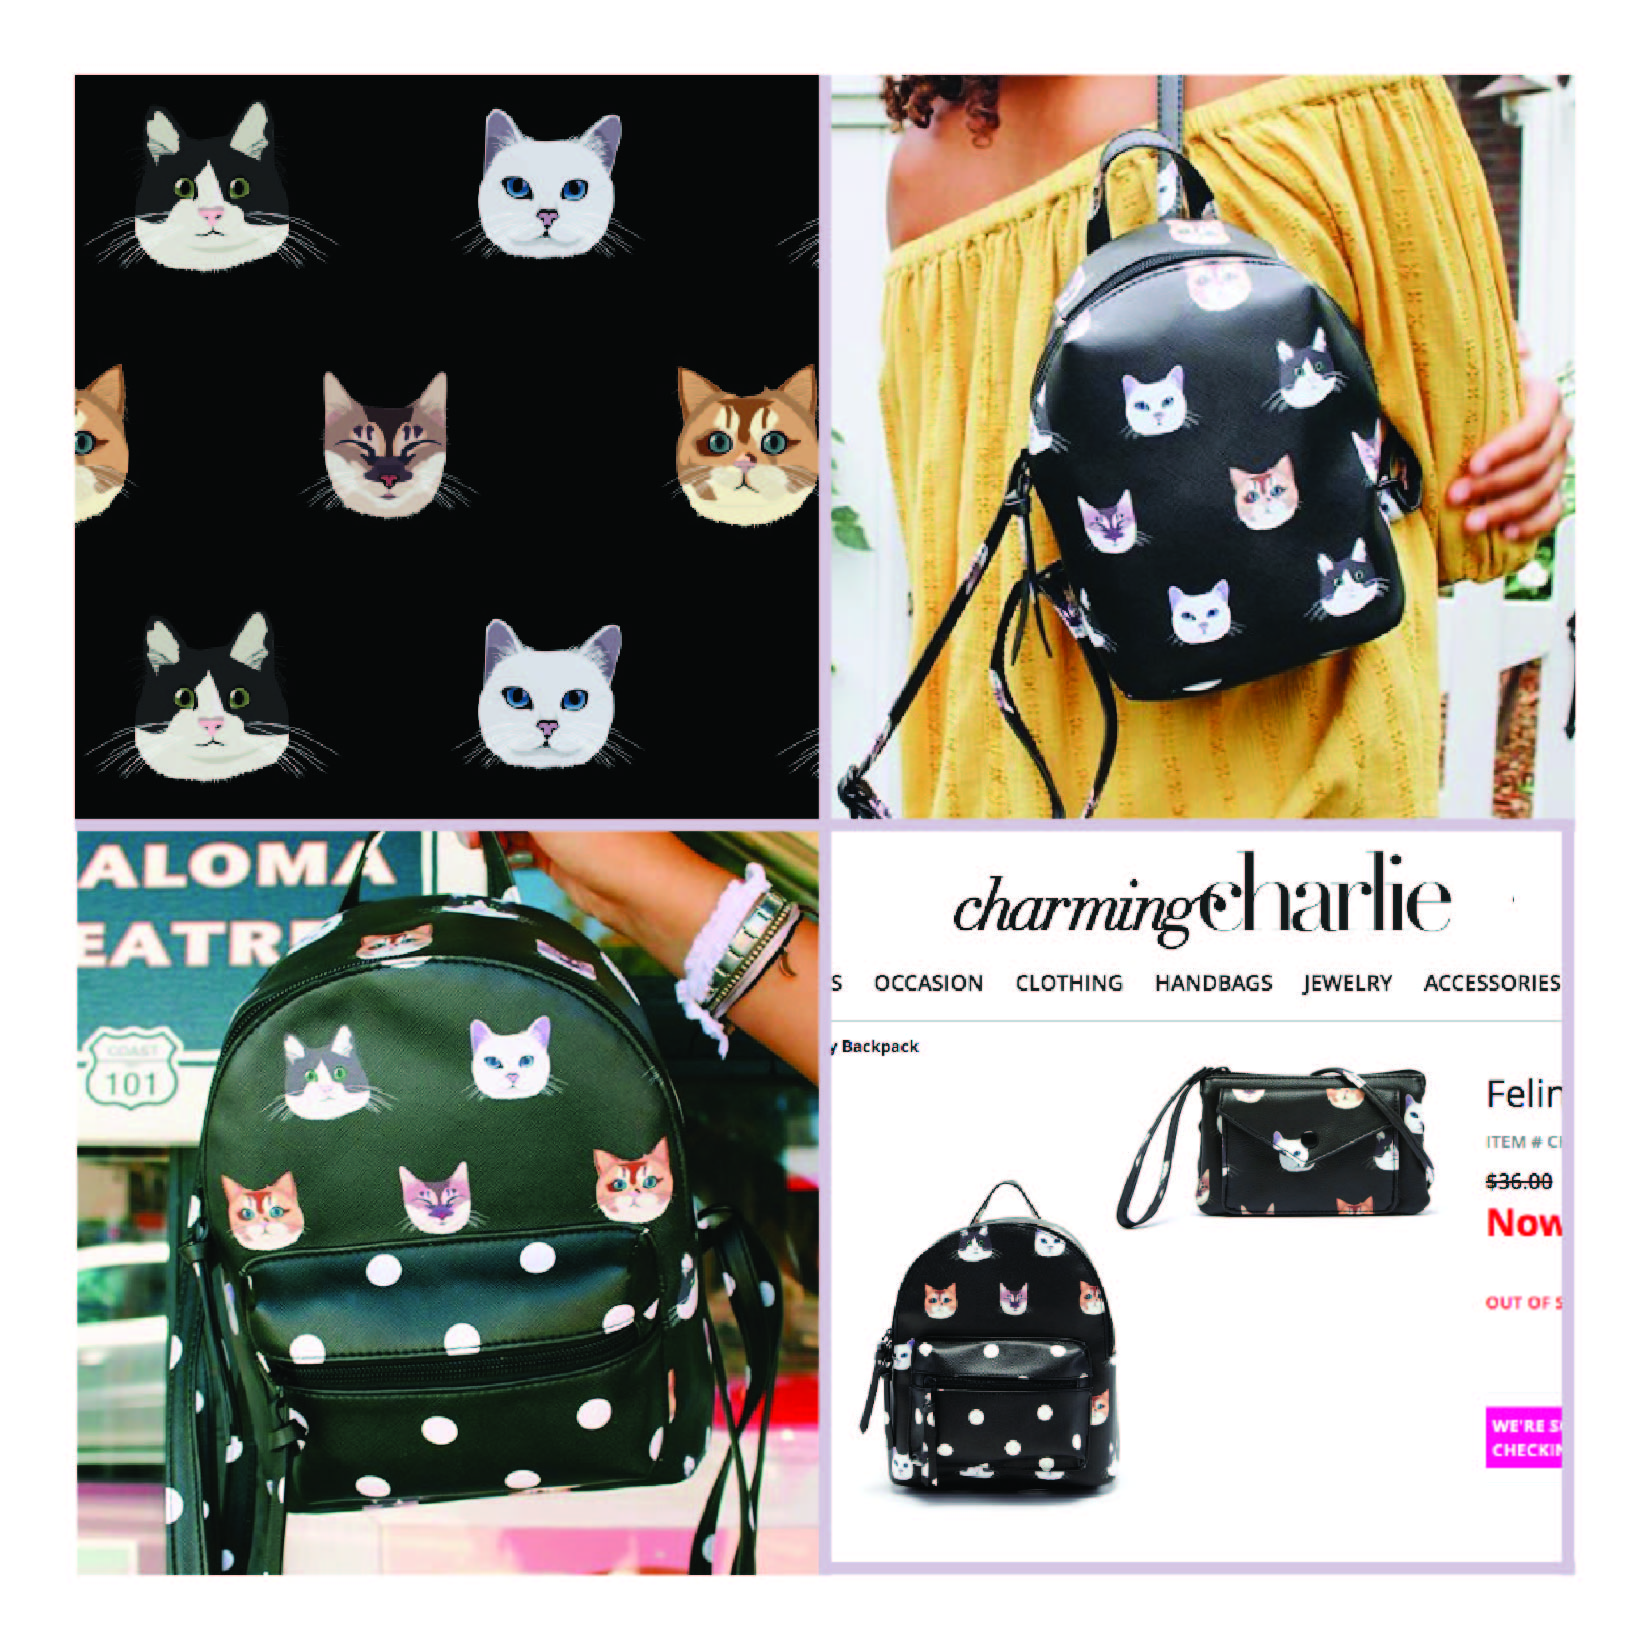 cat bag samples-01.jpg